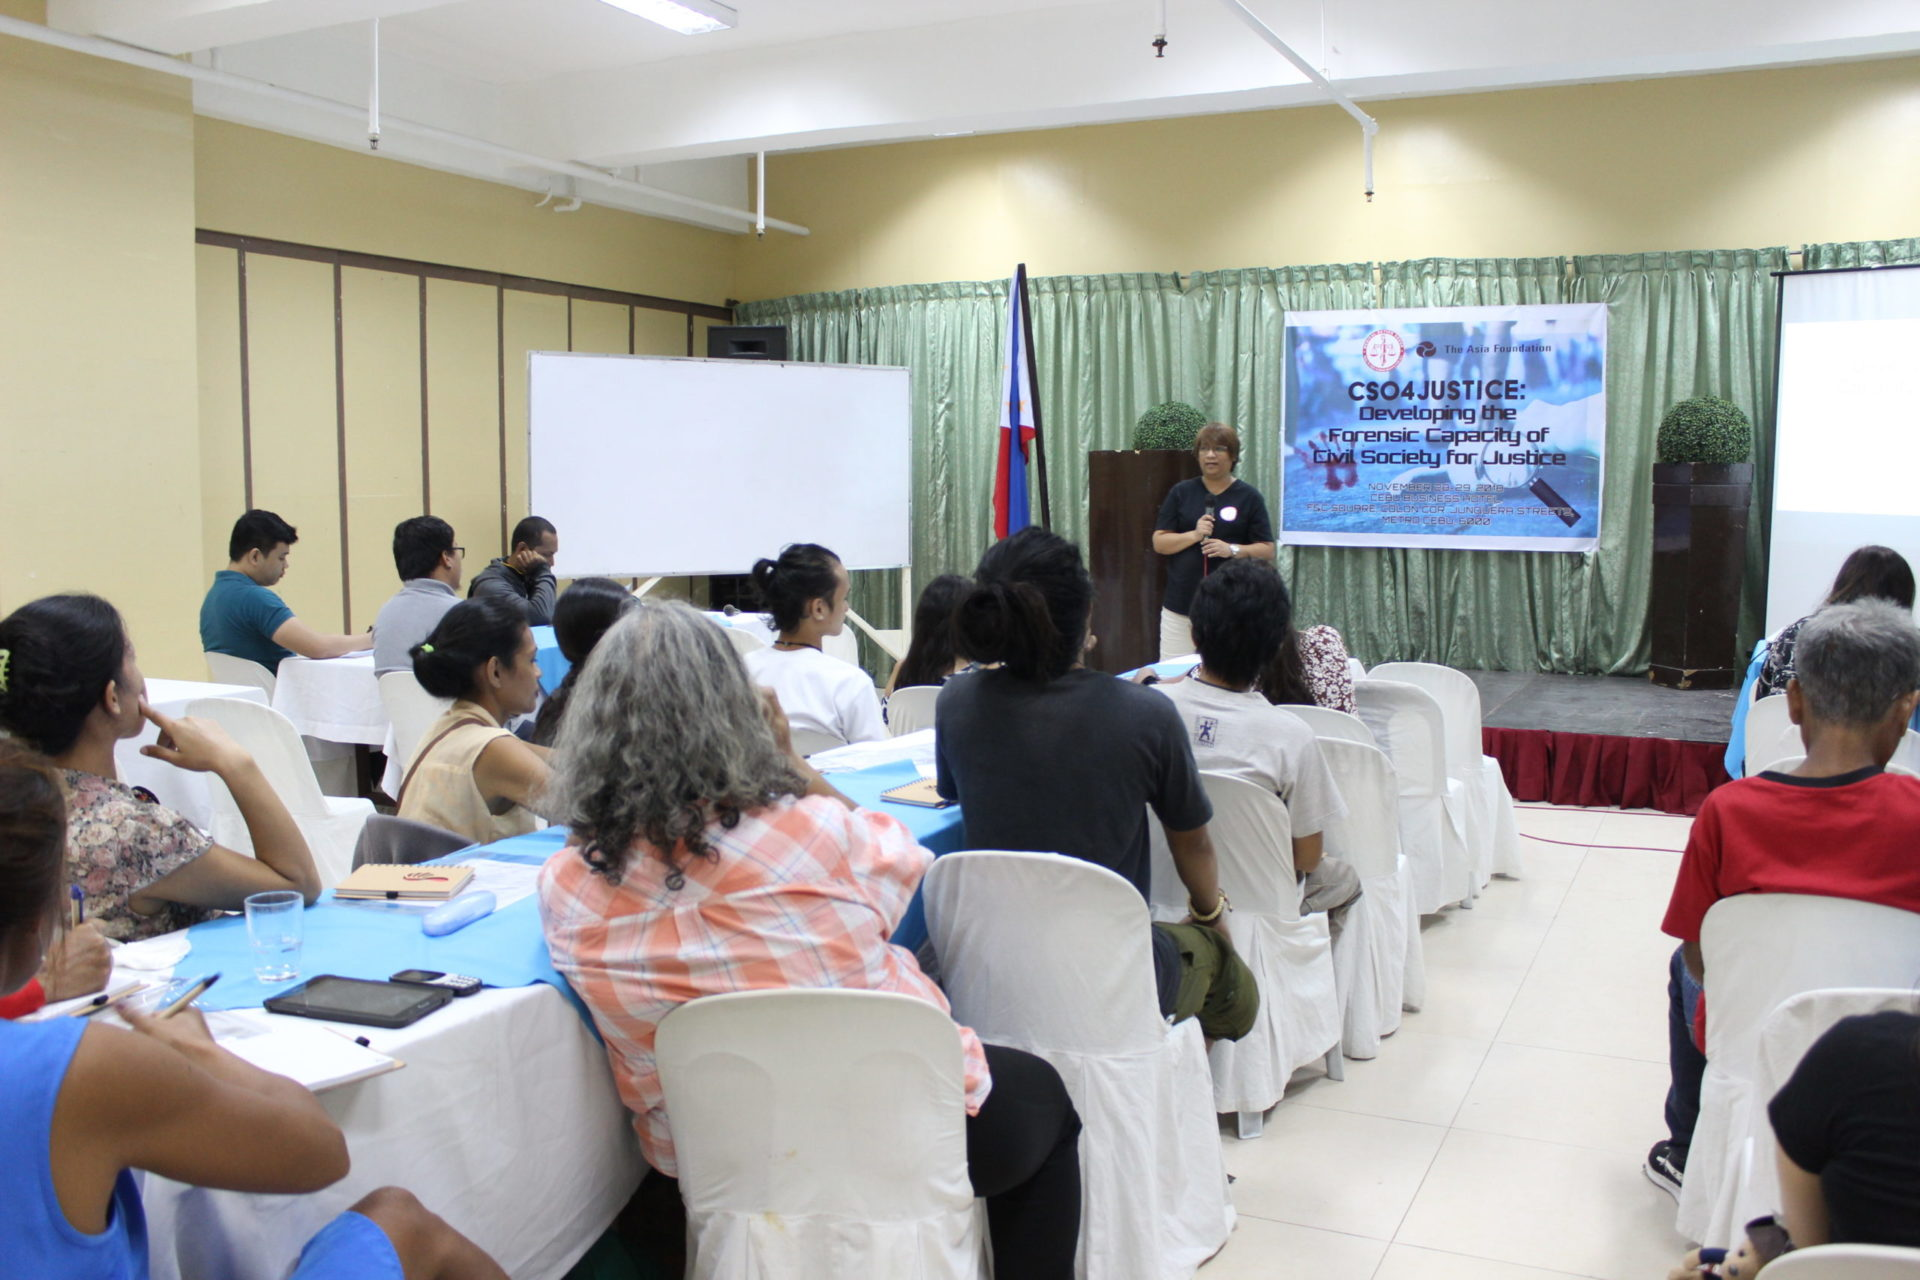 DEVELOPING THE FORENSIC CAPACITY OF CIVIL SOCIETY FOR JUSTICE